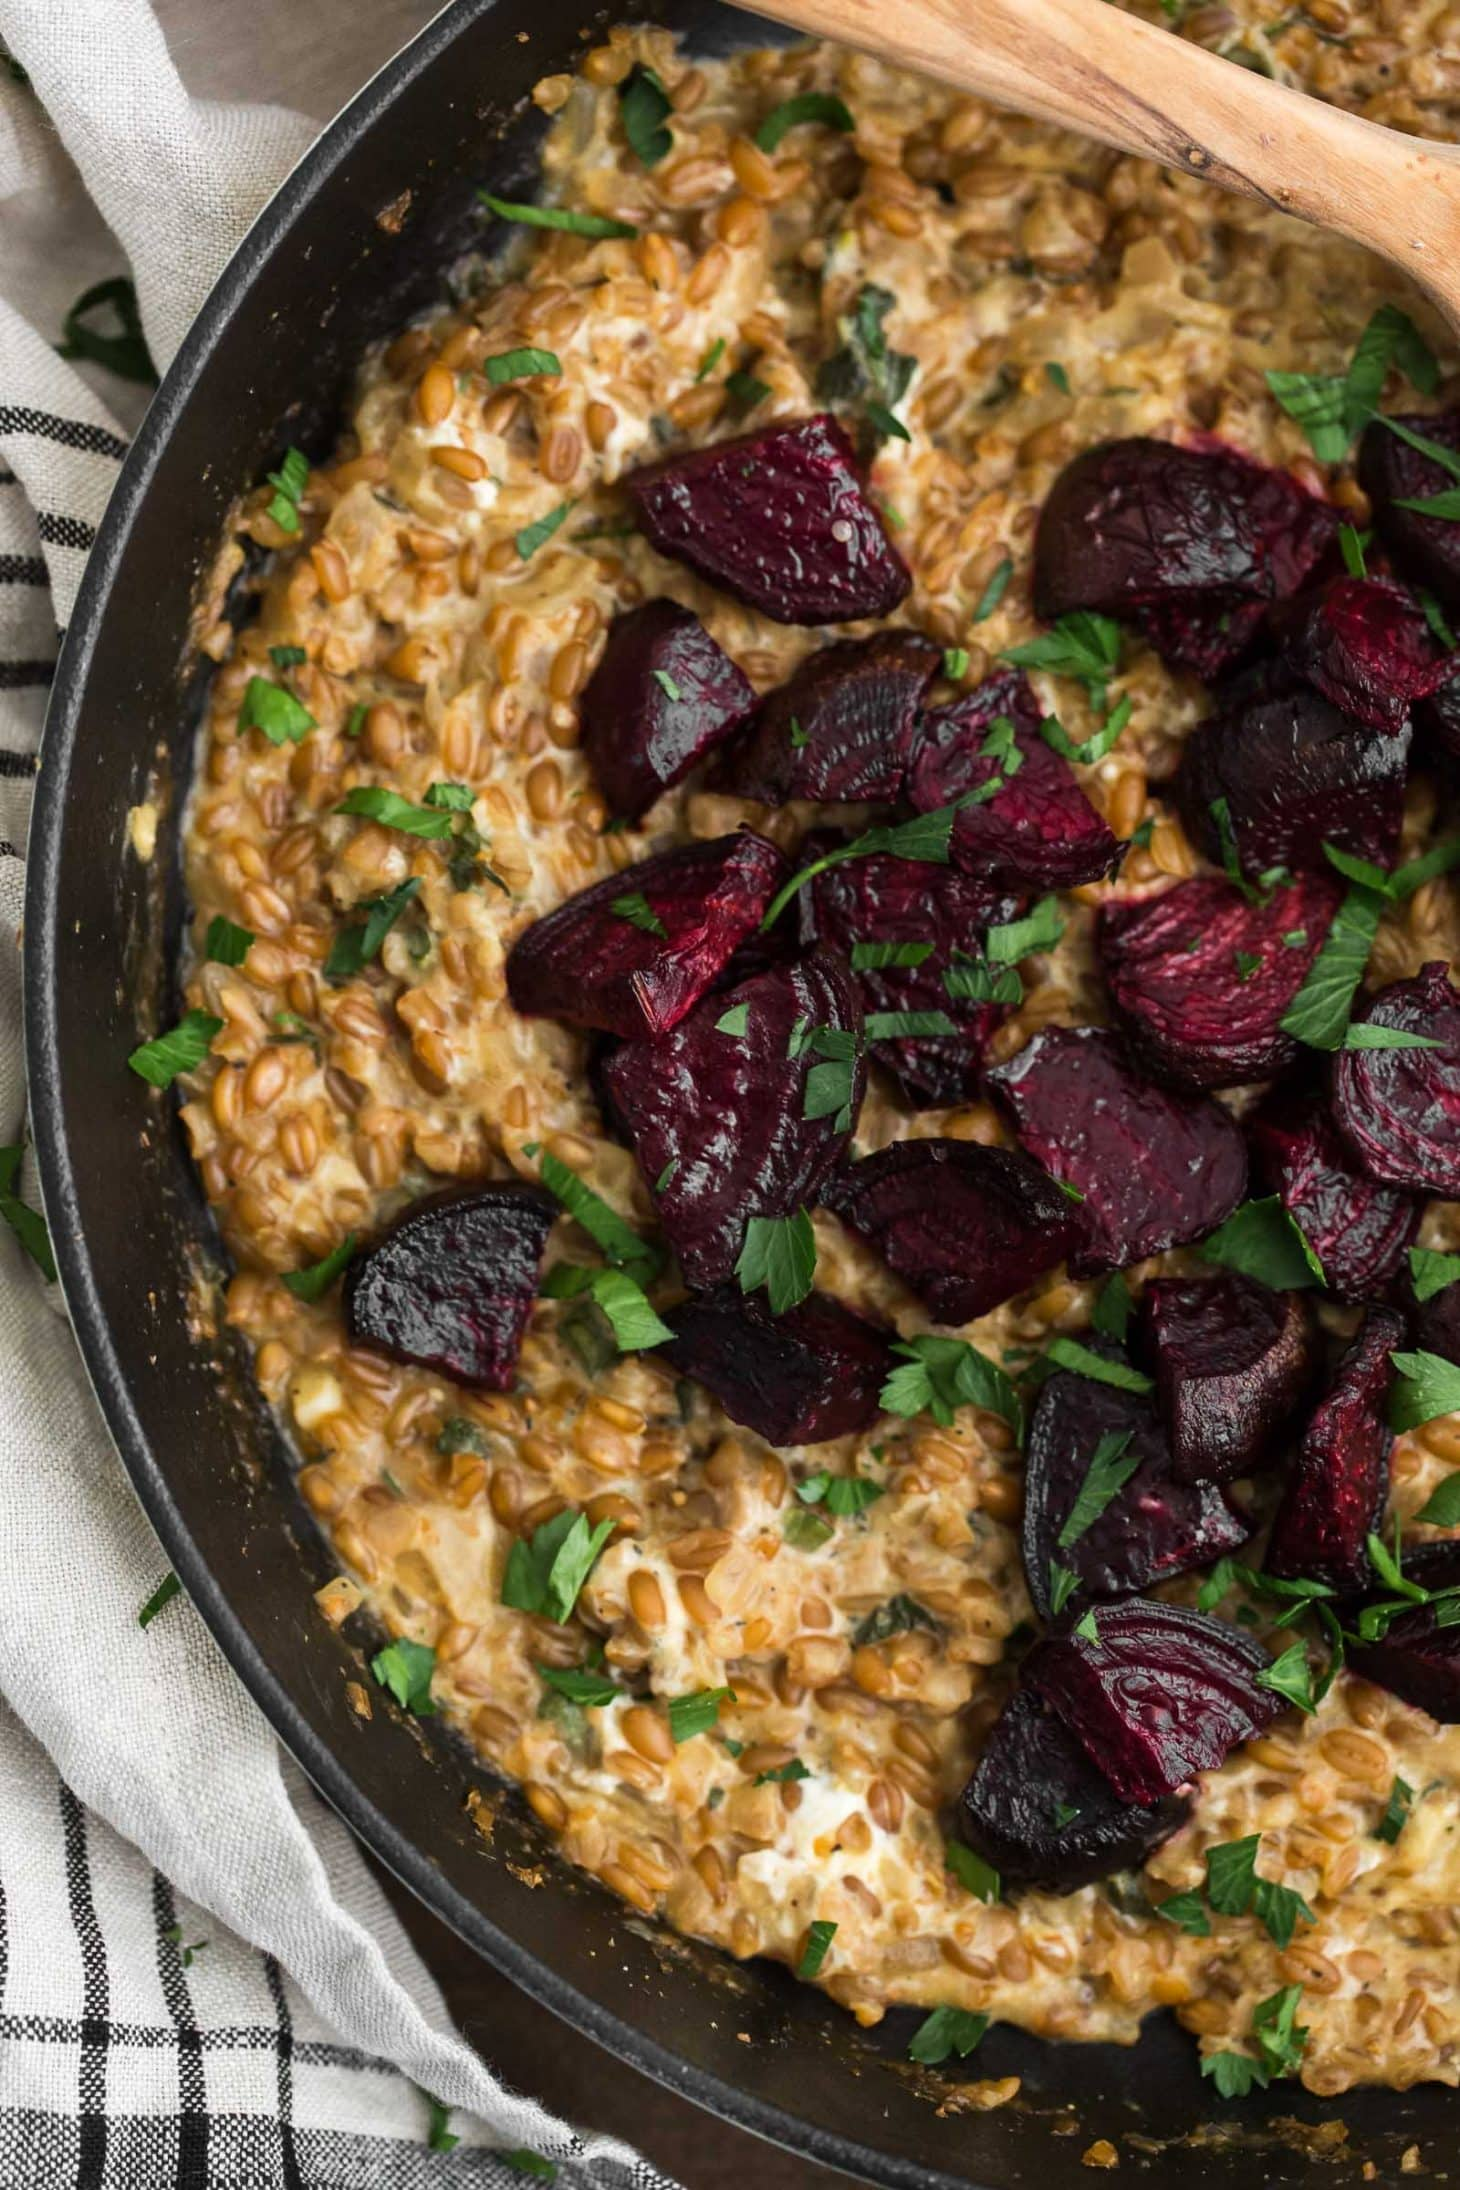 Cracked Spelt Risotto with Roasted Beets | @naturallyella